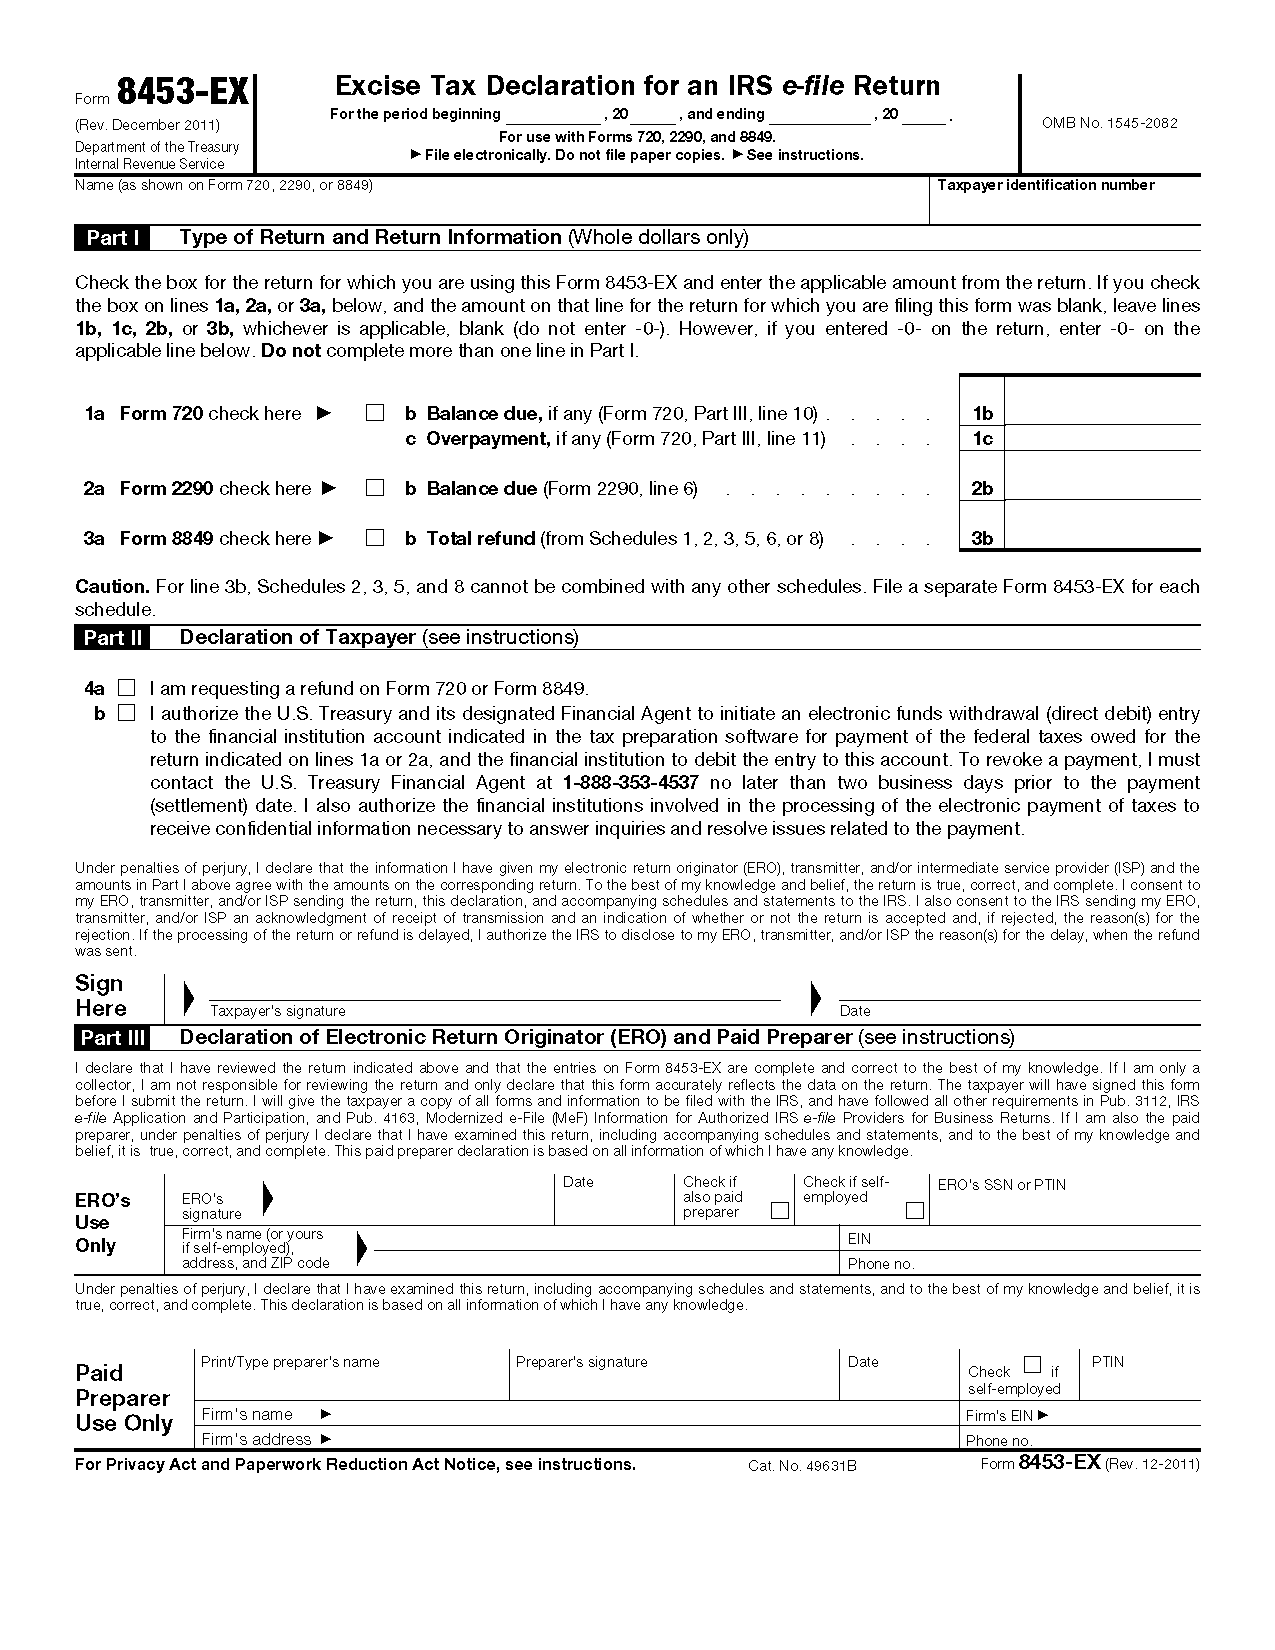 Form 8453-EX Excise Tax Declaration for an IRS e-file Return